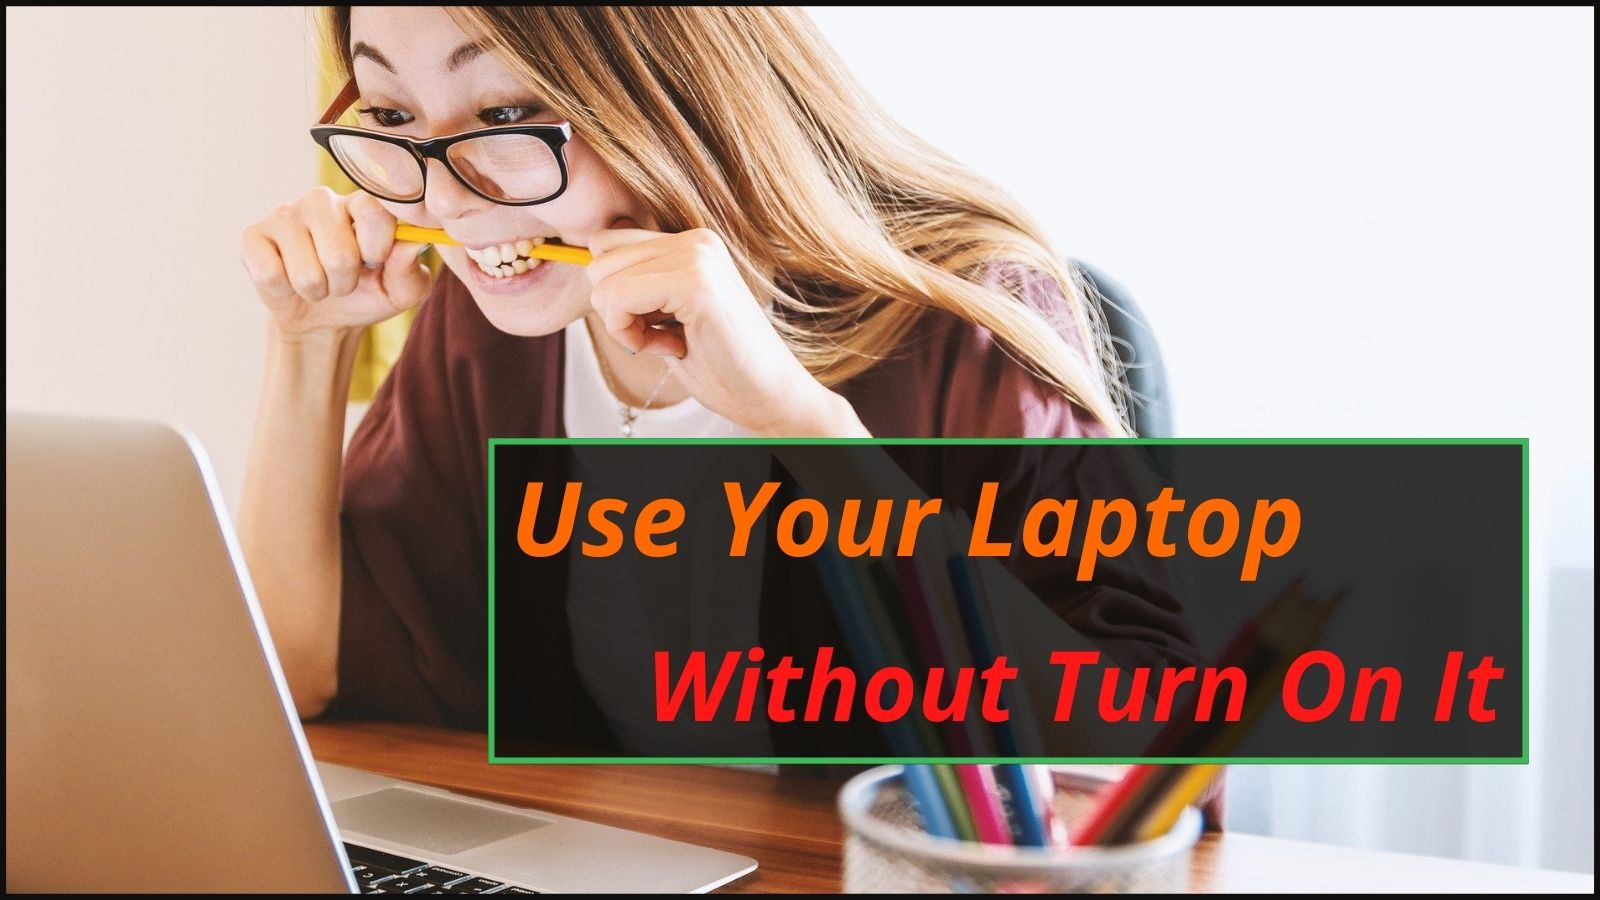 Use Laptop Without Turn On It